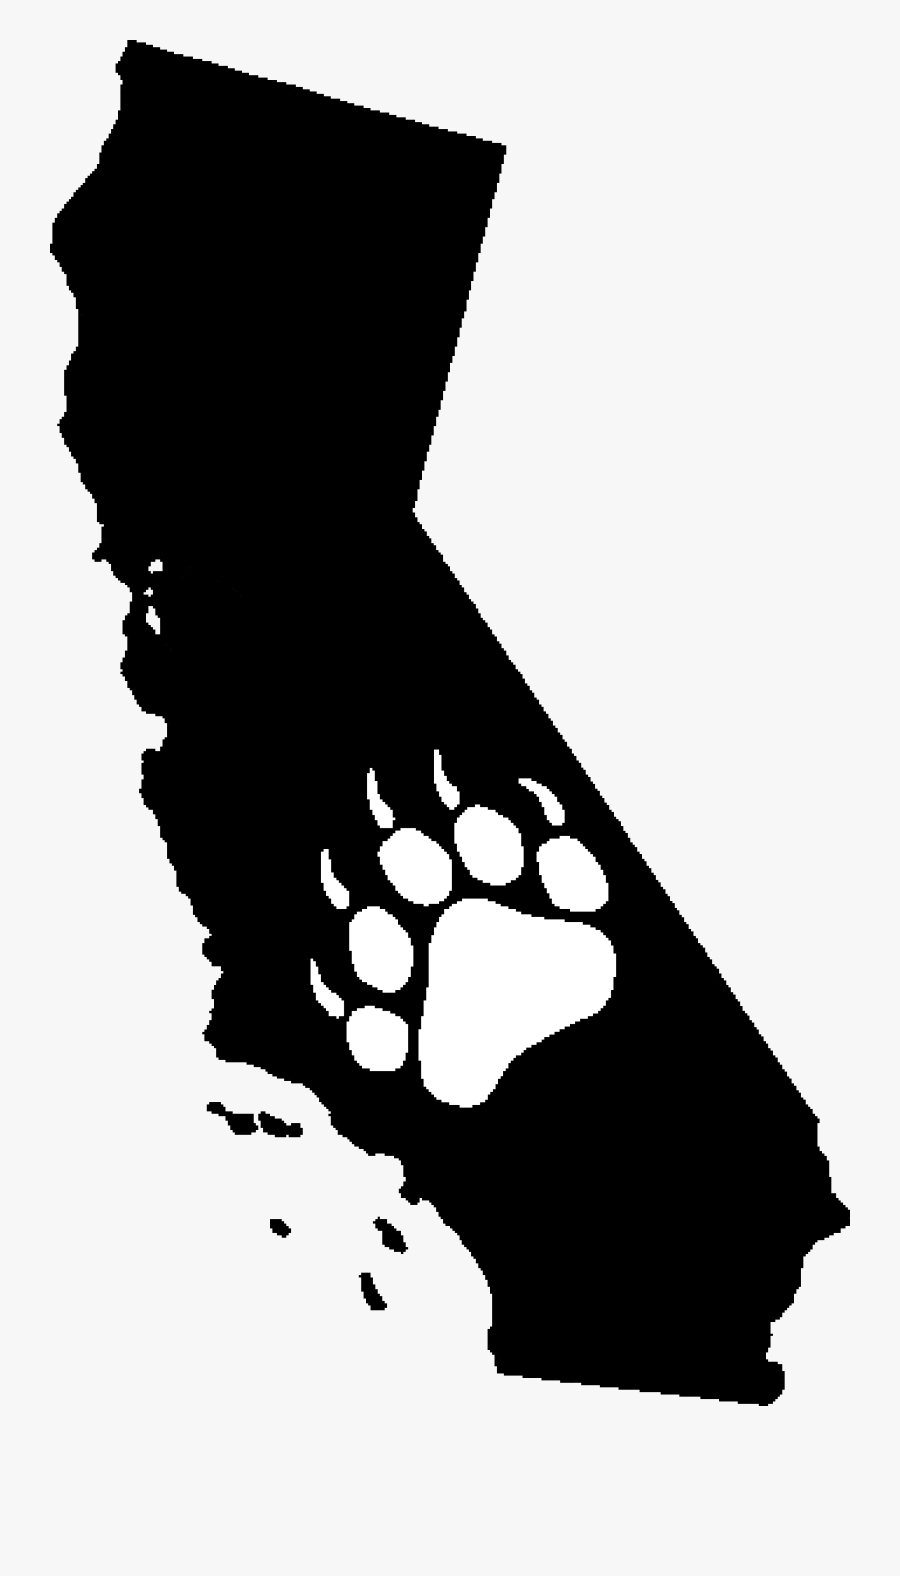 Los Angeles American Black Bear California Grizzly.